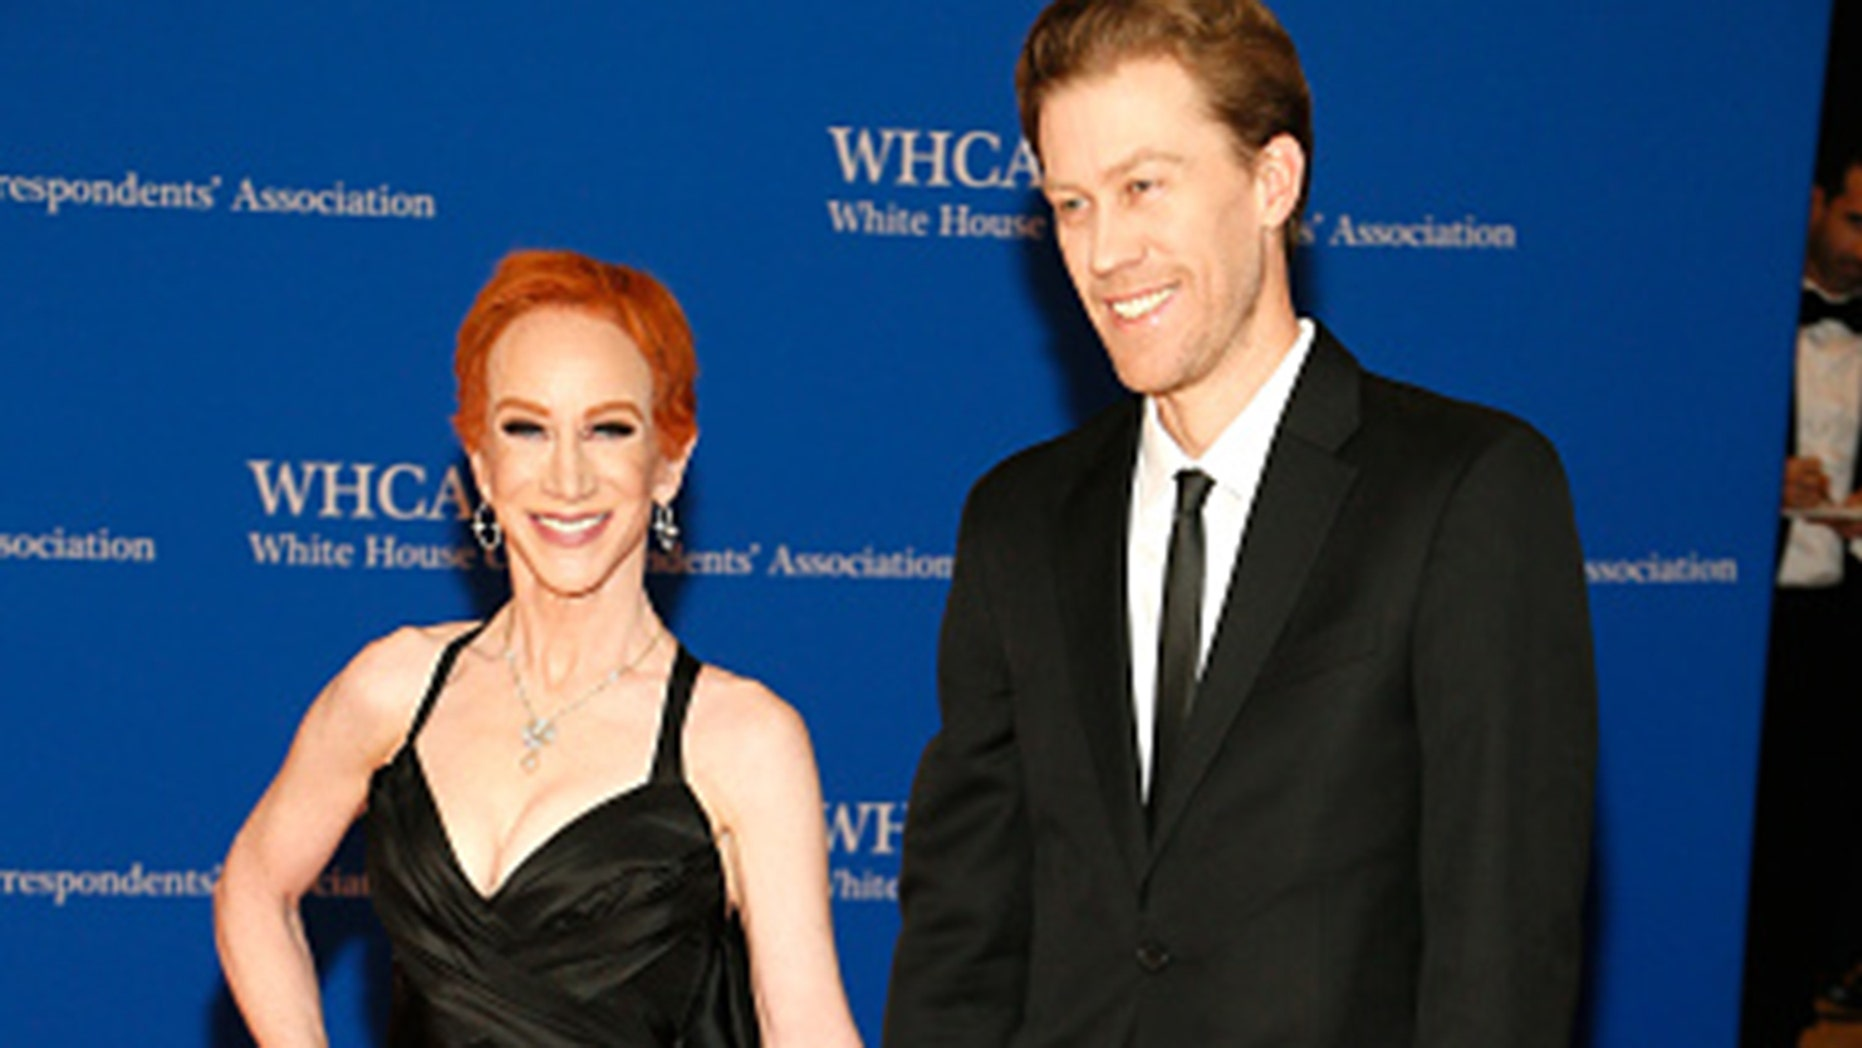 Kathy Griffin and Randy Bick split after seven years together. (Photo by Paul Morigi/WireImage)